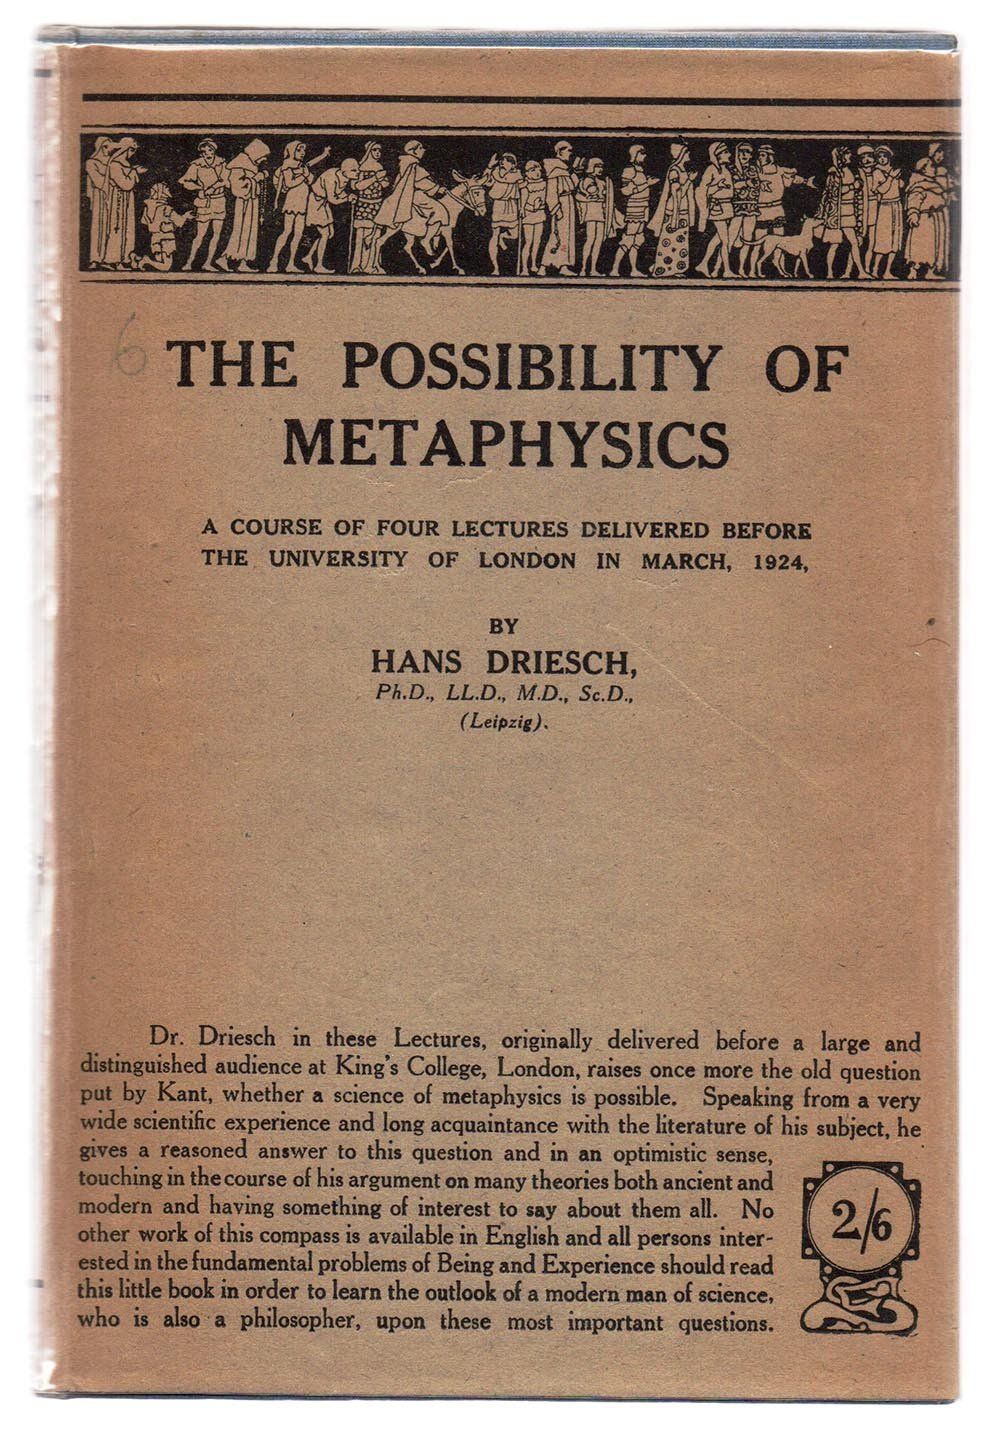 The Possibility of Metaphysics: A Course in Four Lectures Delivered Before the University of London in March, 1924